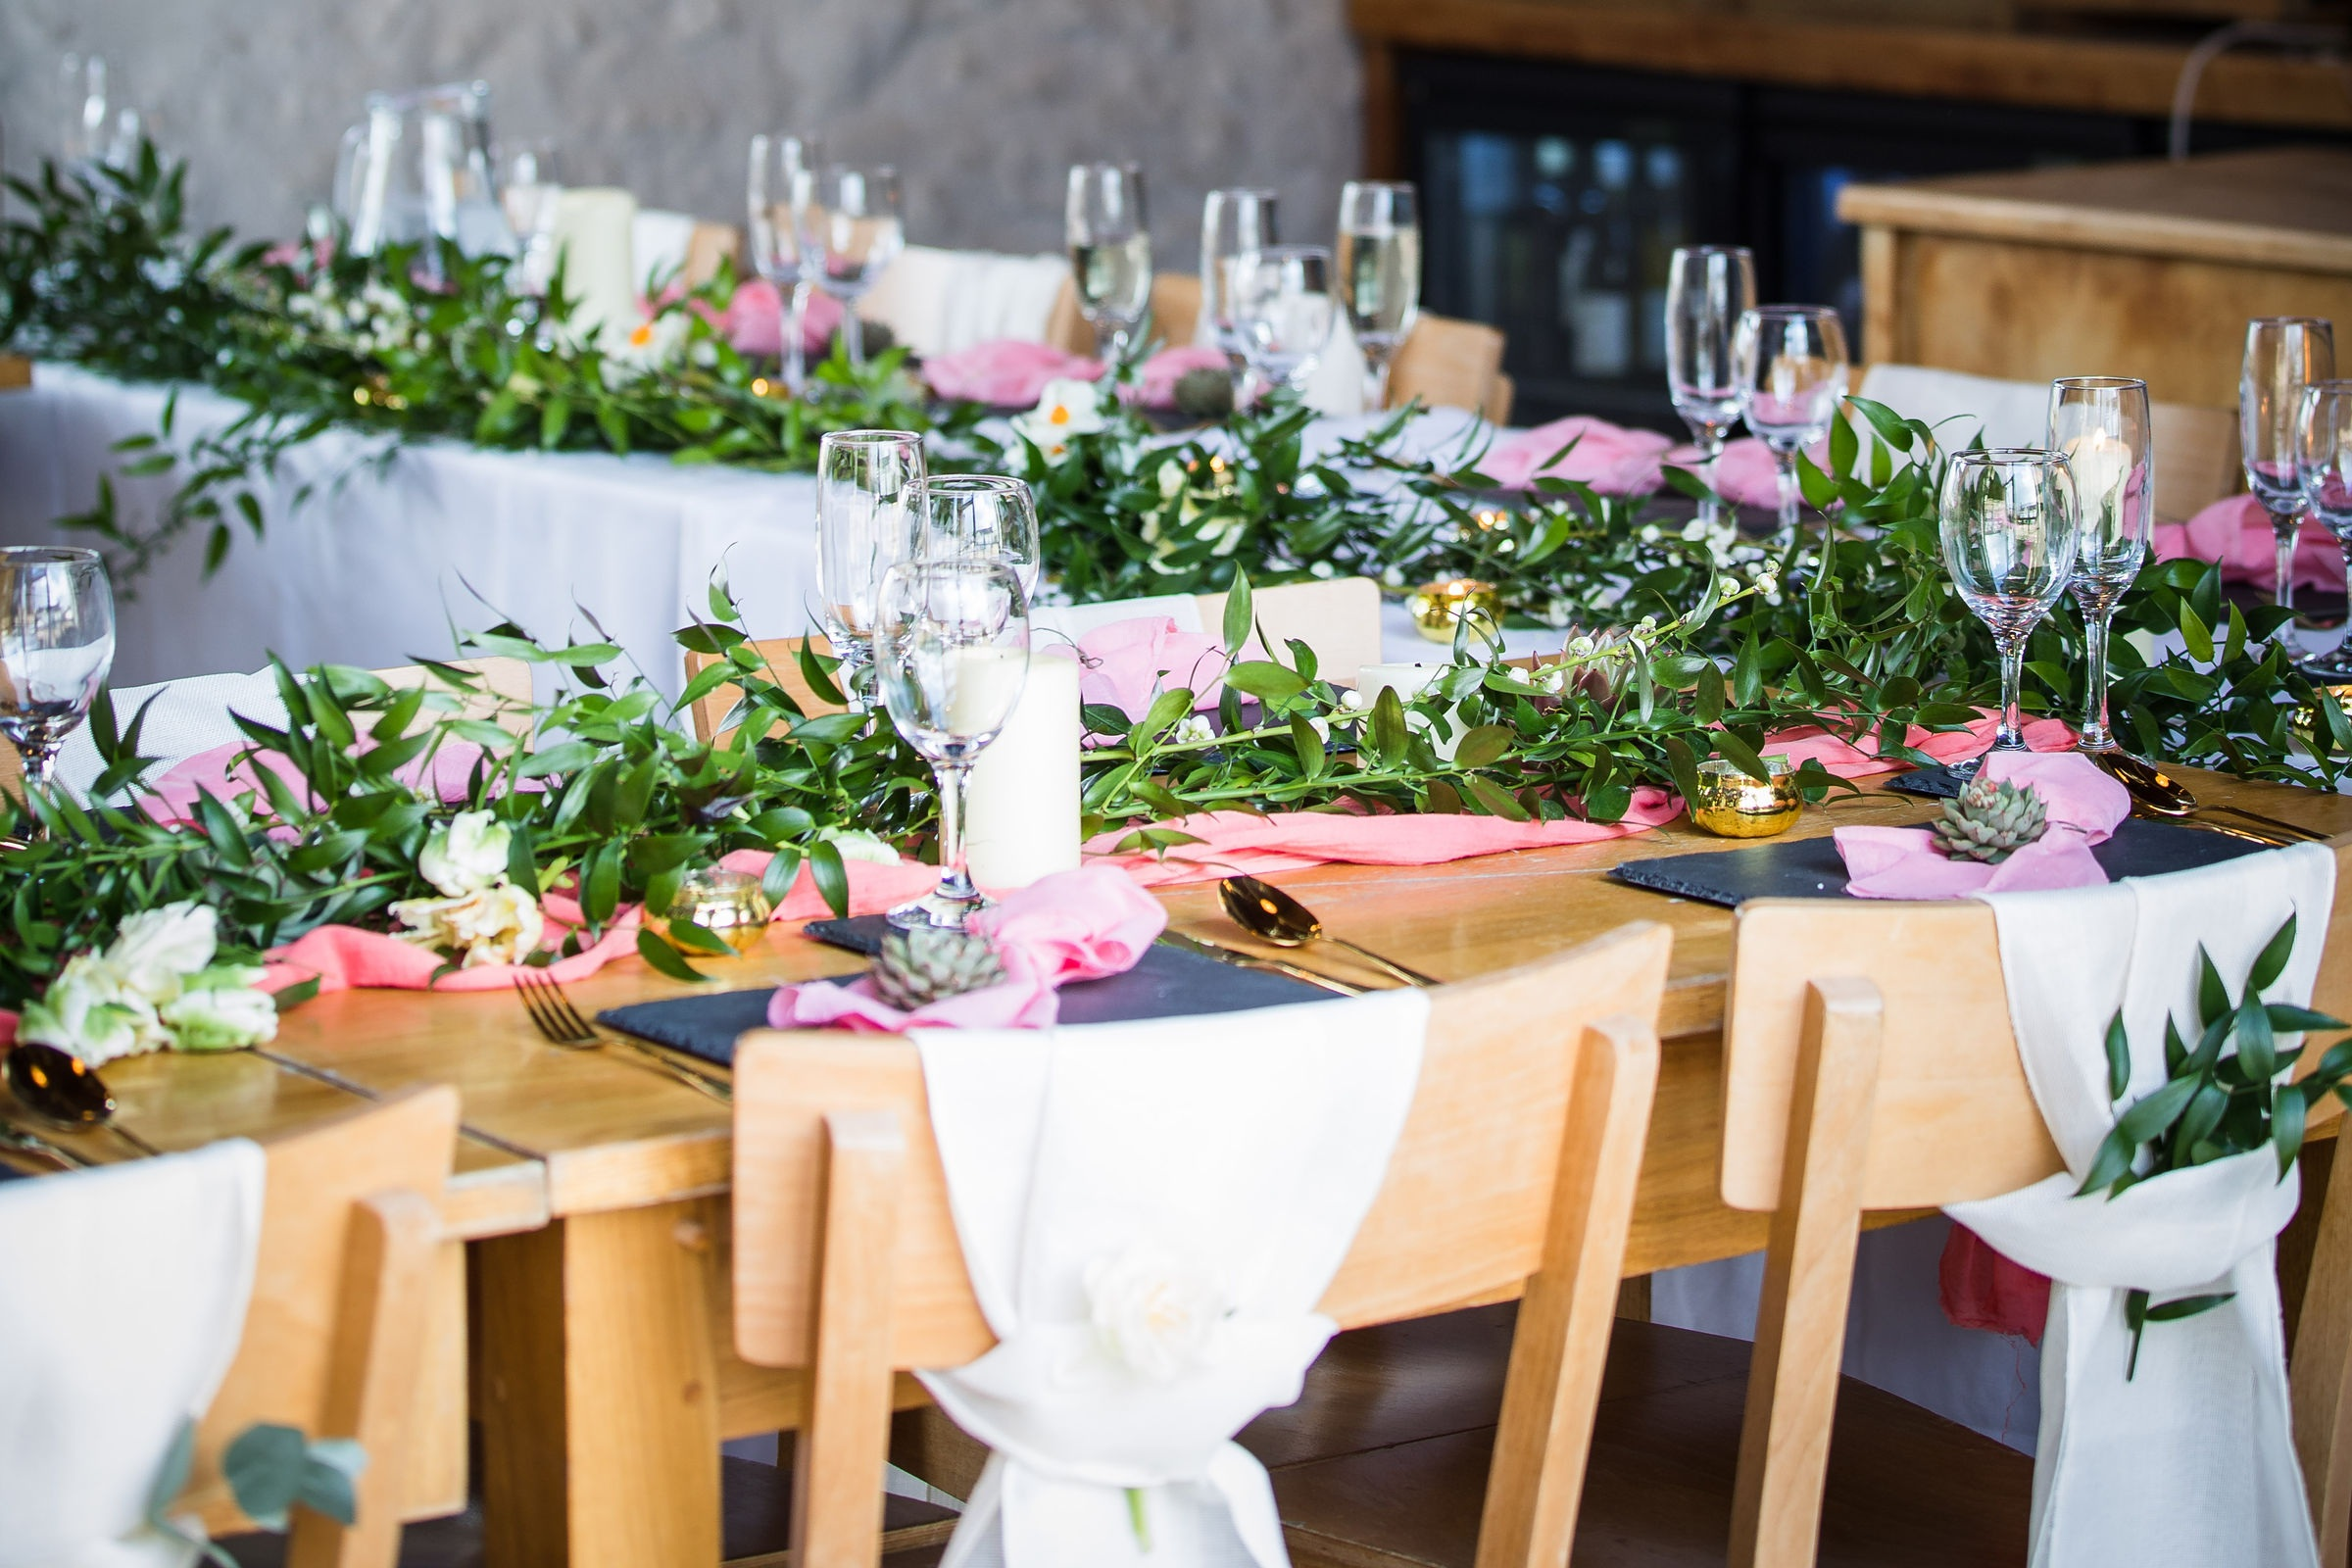 Our tips - We love the use of metallics against simple greenery decor. If you are using greenery as a main feature we recommend using metallics on your tables to give a luxury feel and bring colour in with your napkins or favours.